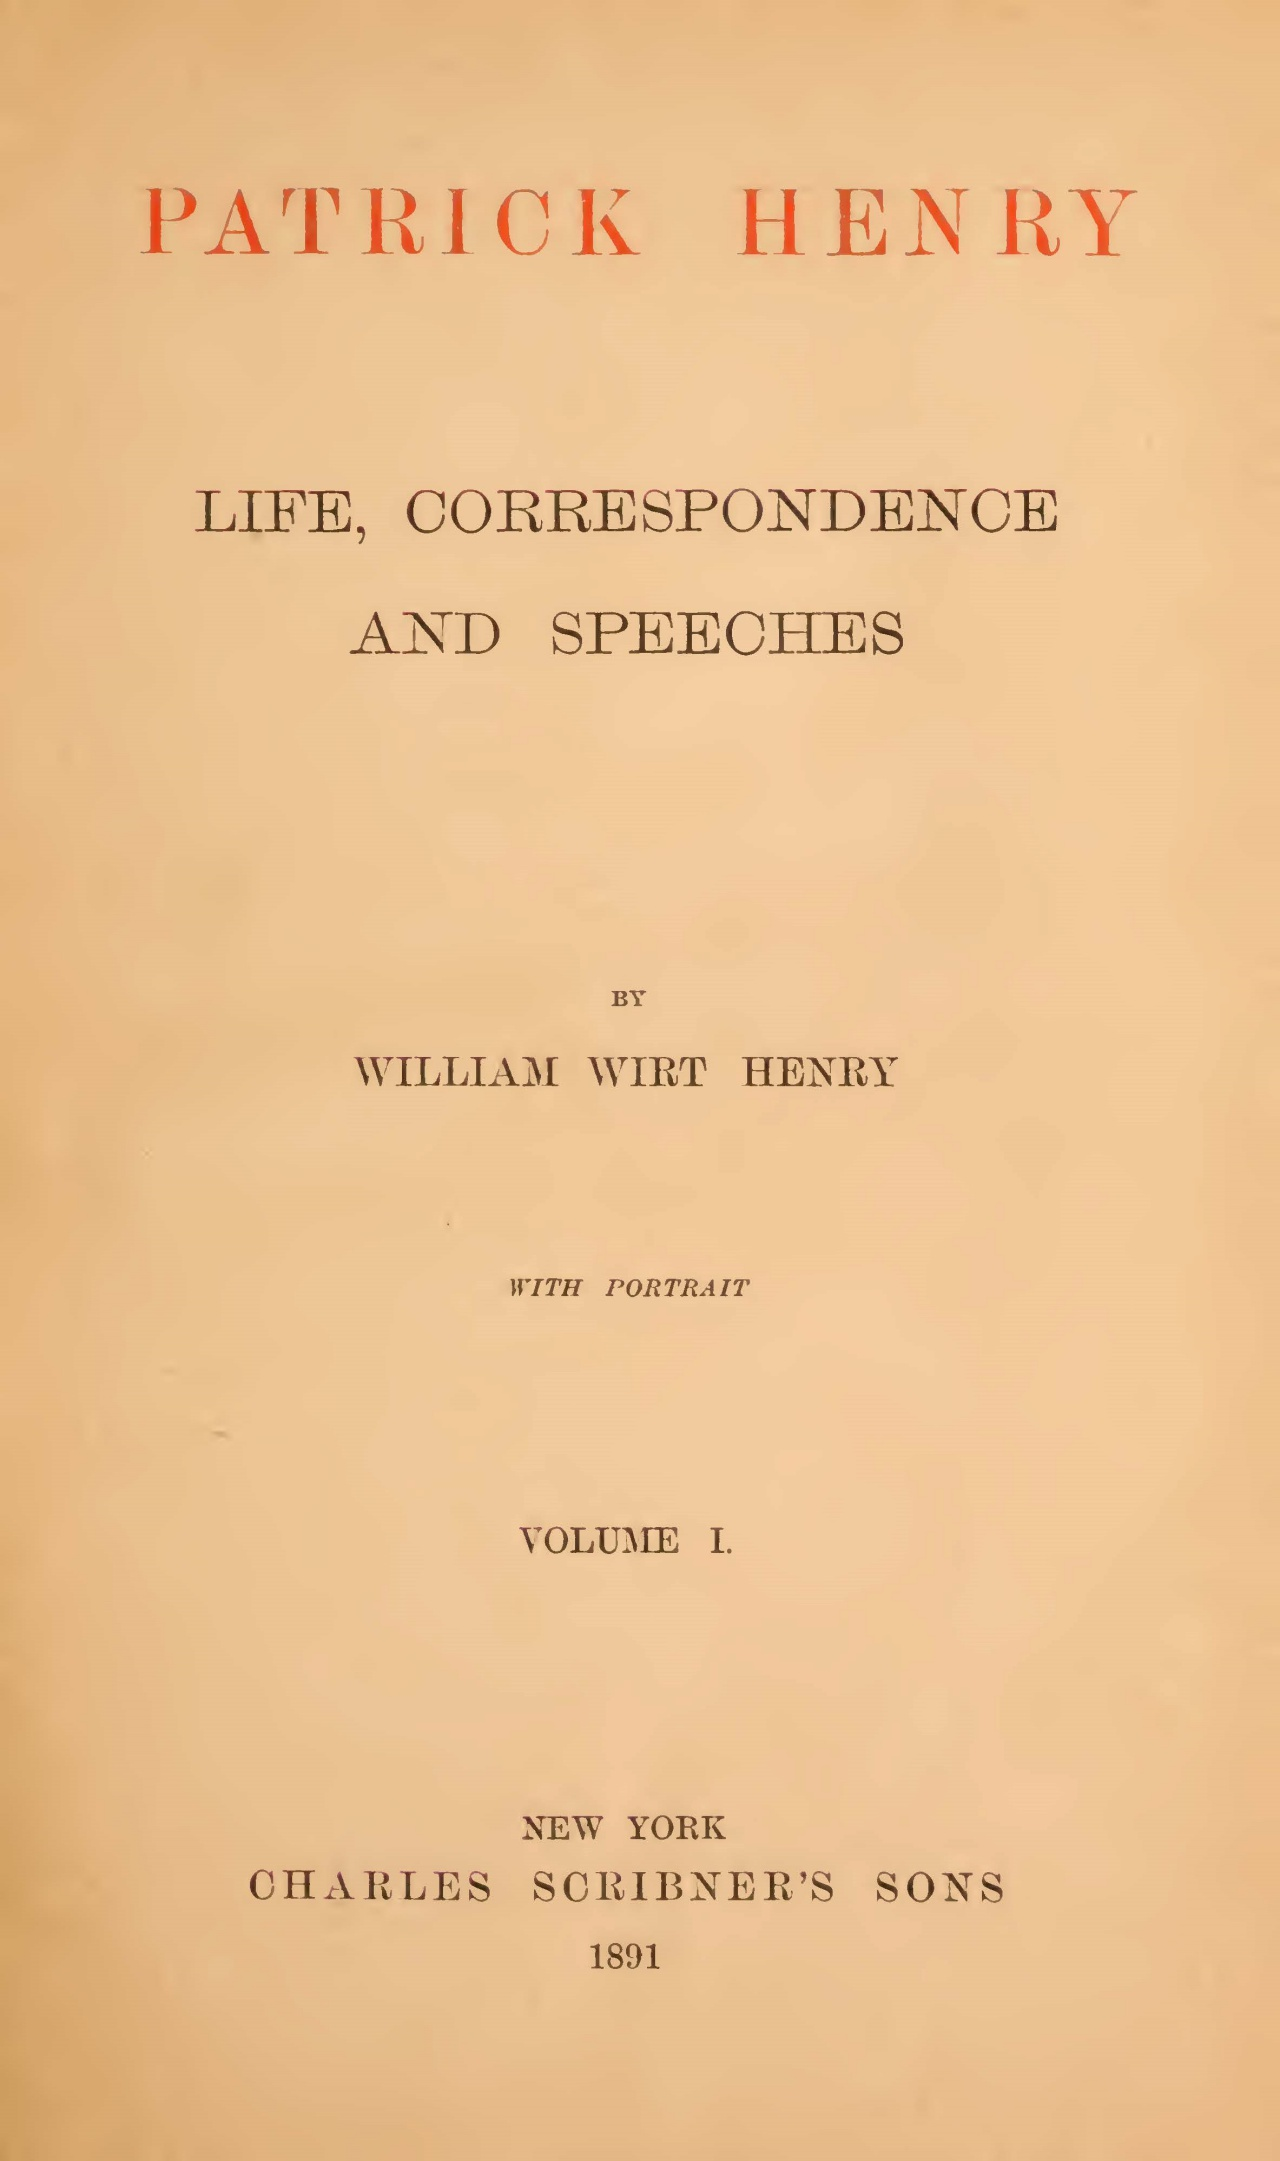 Henry, William Wirt, Patrick Henry Life Correspondence and Speeches, Vol. 1 Title Page.jpg